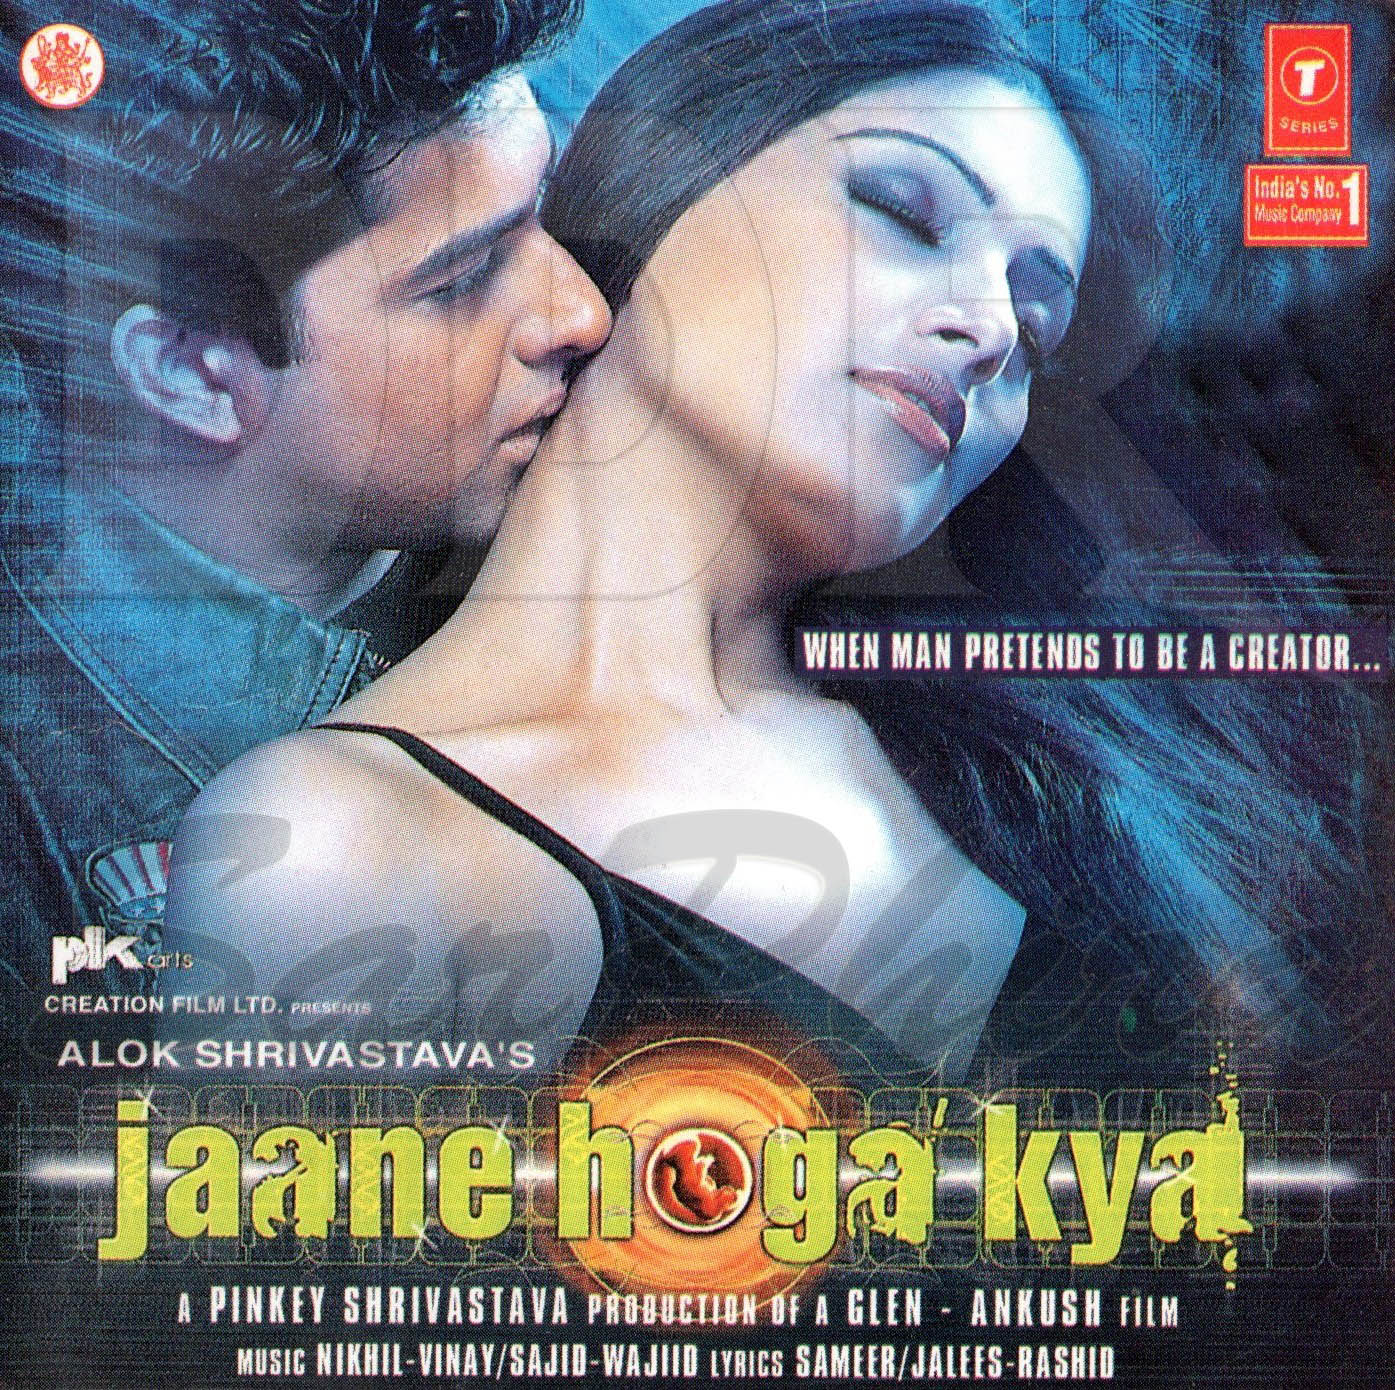 Kya Bat H Remix Song Download Mp3: THE HOME OF SHREYA GHOSHAL SONGS: Jaane Hoga Kya [2005-MP3